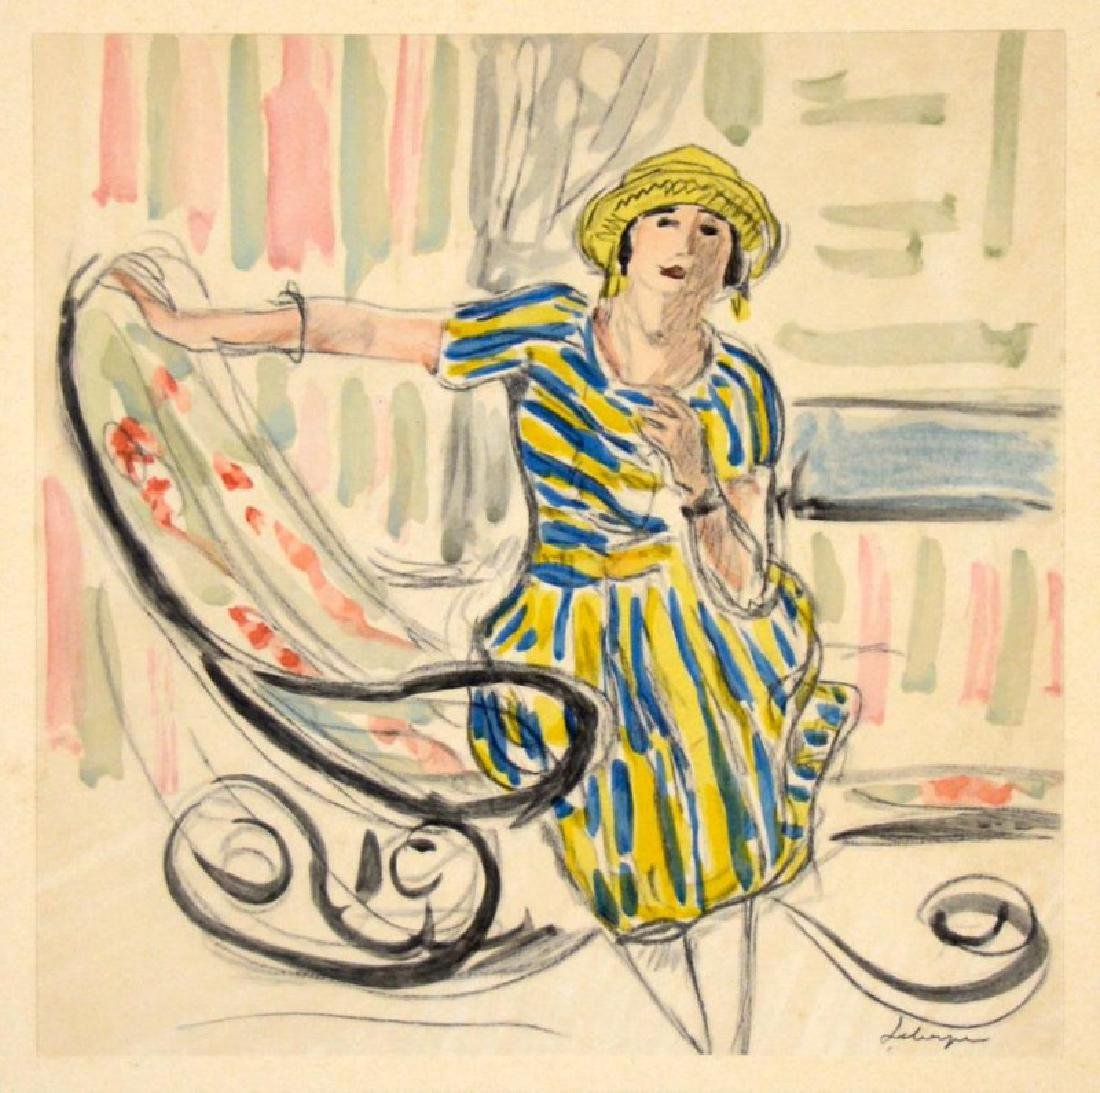 QUELQUES AQUARELLES DE LEBASQUE (Folio)